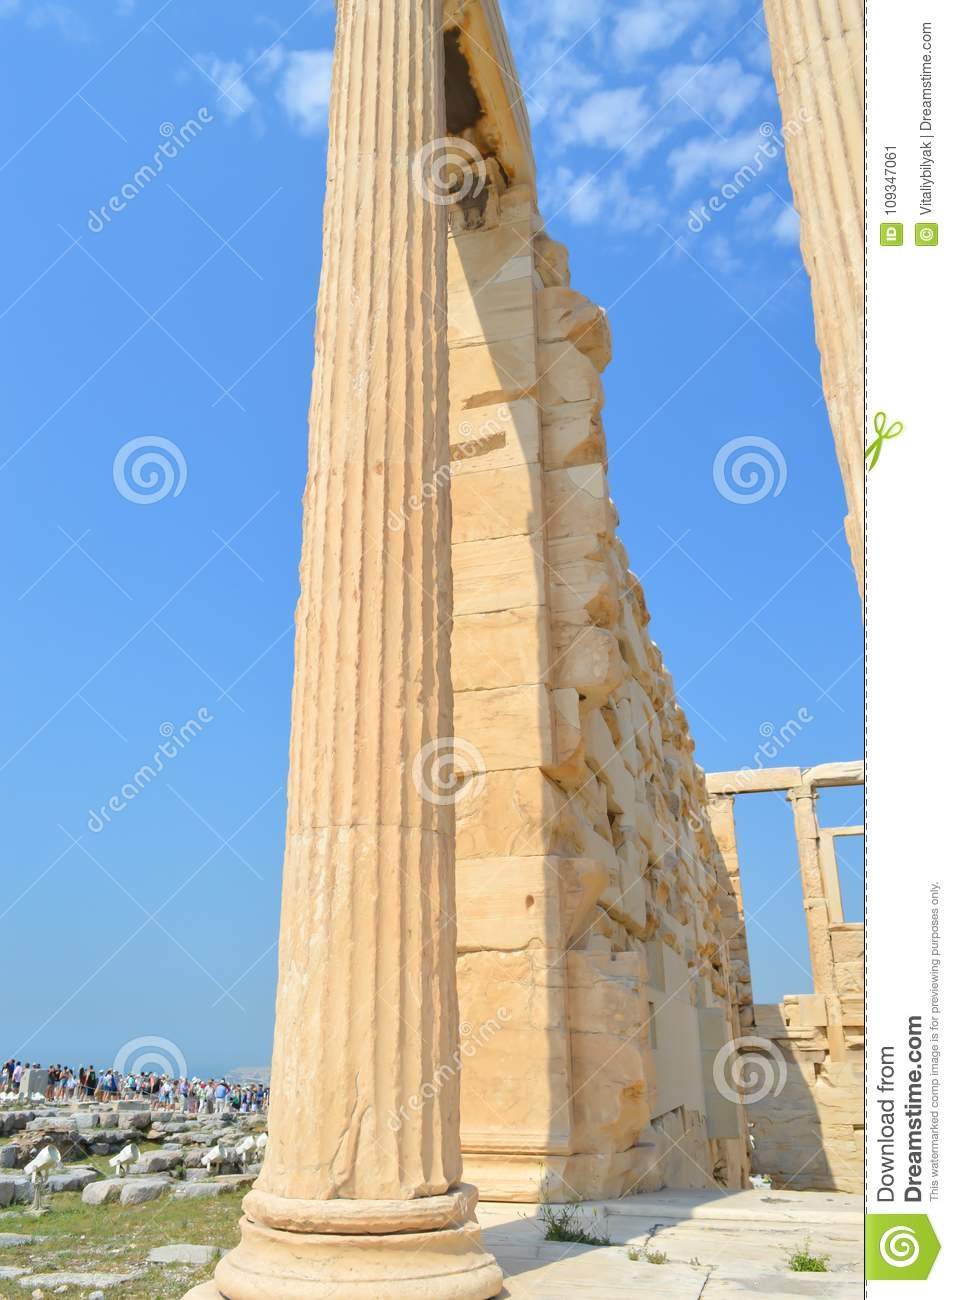 Old Temple of Athena, Acropolis in Athens, Greece on June 16, 2017.